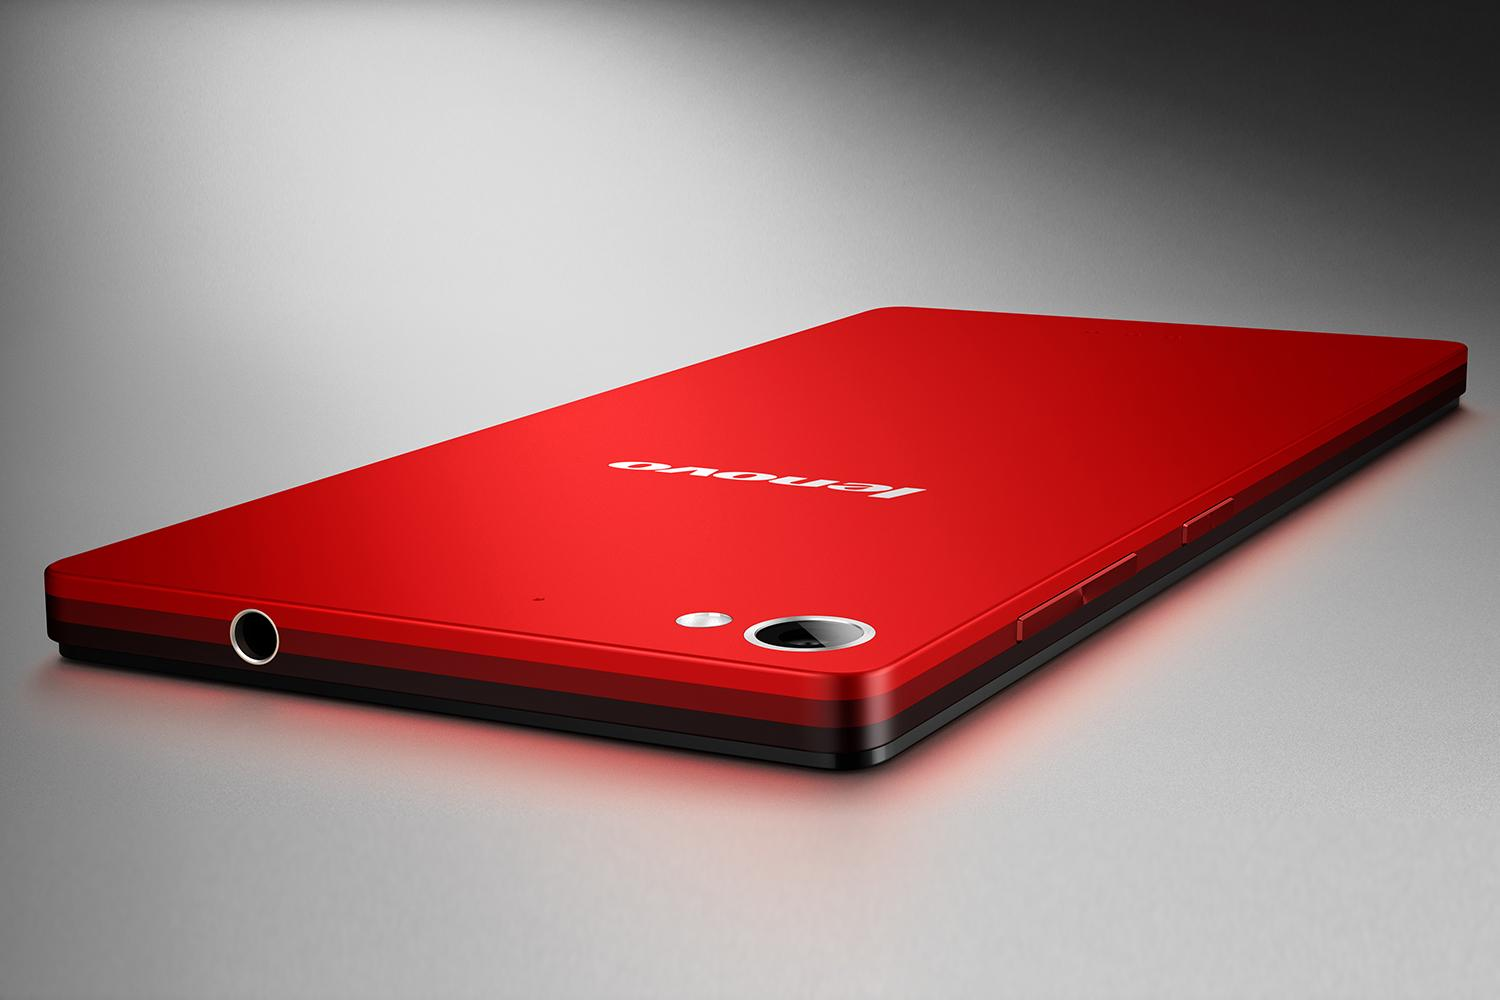 Lenovo To Launch New Smartphone Brand To Take On Xiaomi